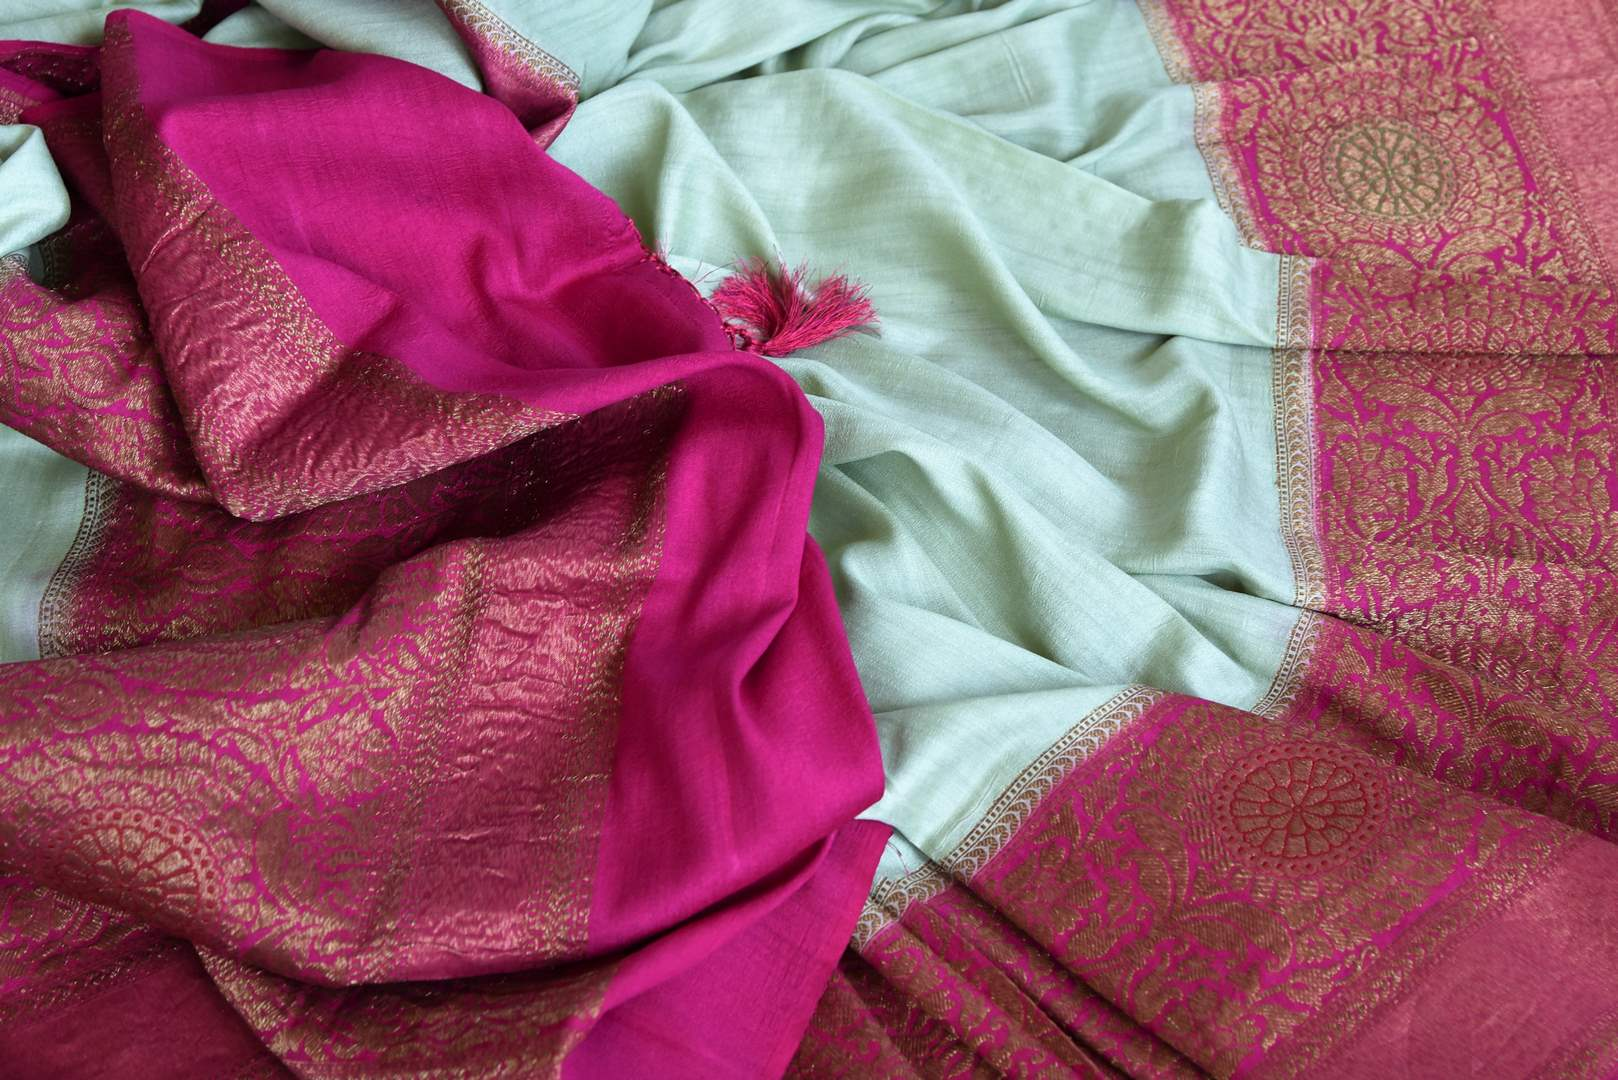 Shop mint green muga Banarasi sari online in USA with pink antique zari border. Be a vision in the beautifu Banarasi sarees from Pure Elegance Indian clothing store in USA. Shop online now.-details